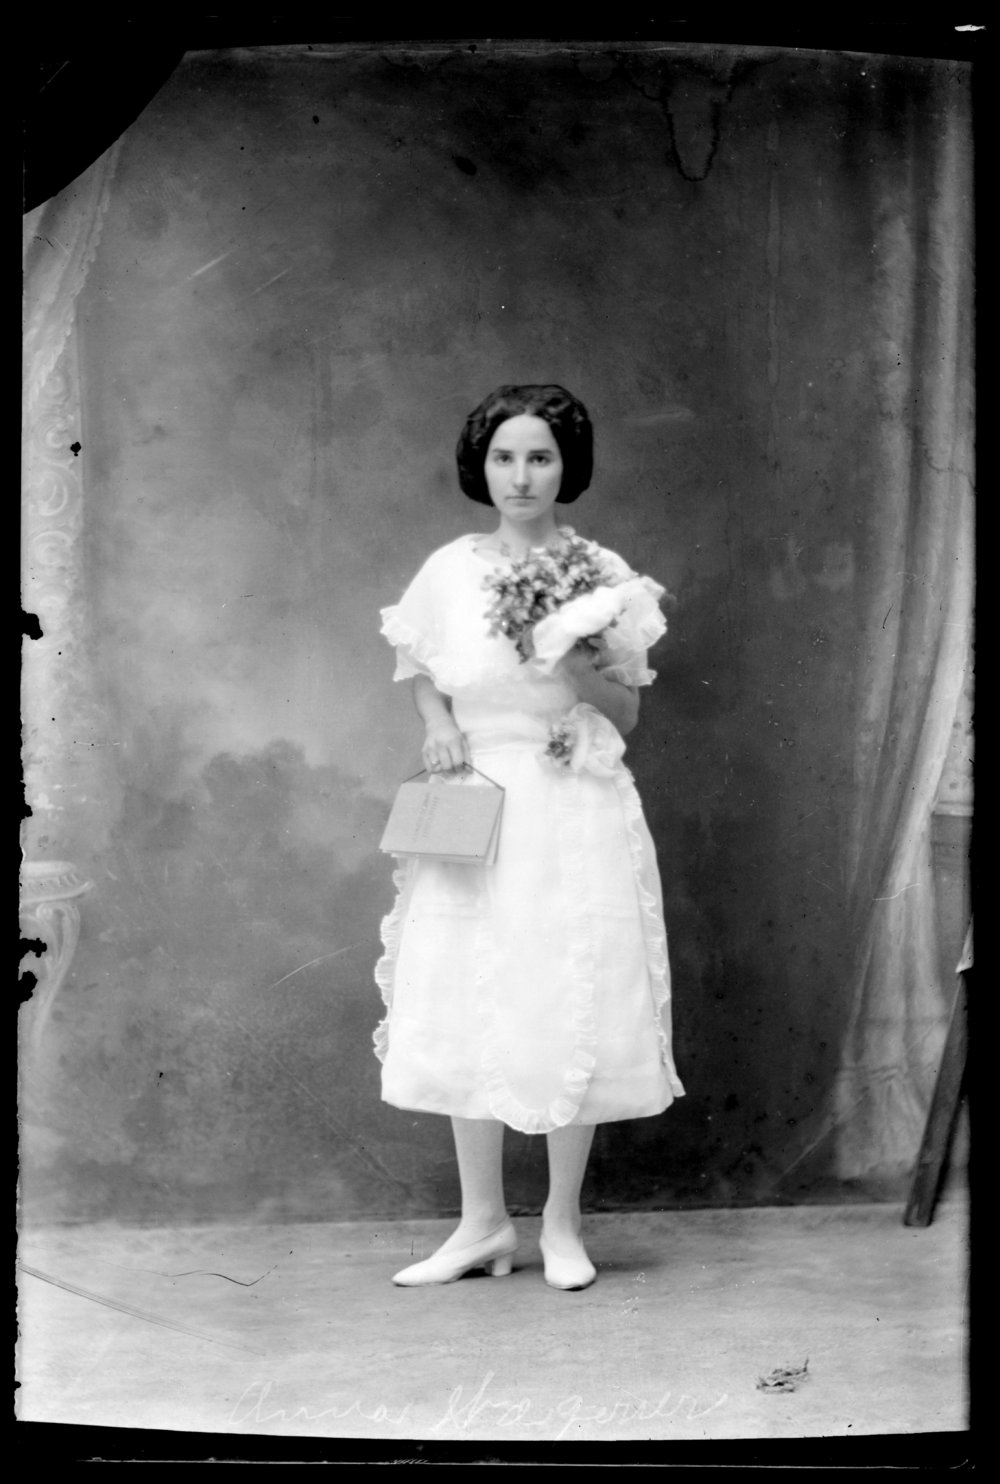 Michael A. Kennedy photo collection, St. Paul, Kansas - Portrait of Anna (Wagner) Kennedy in a white dress holding flowers and a handbag (2747)